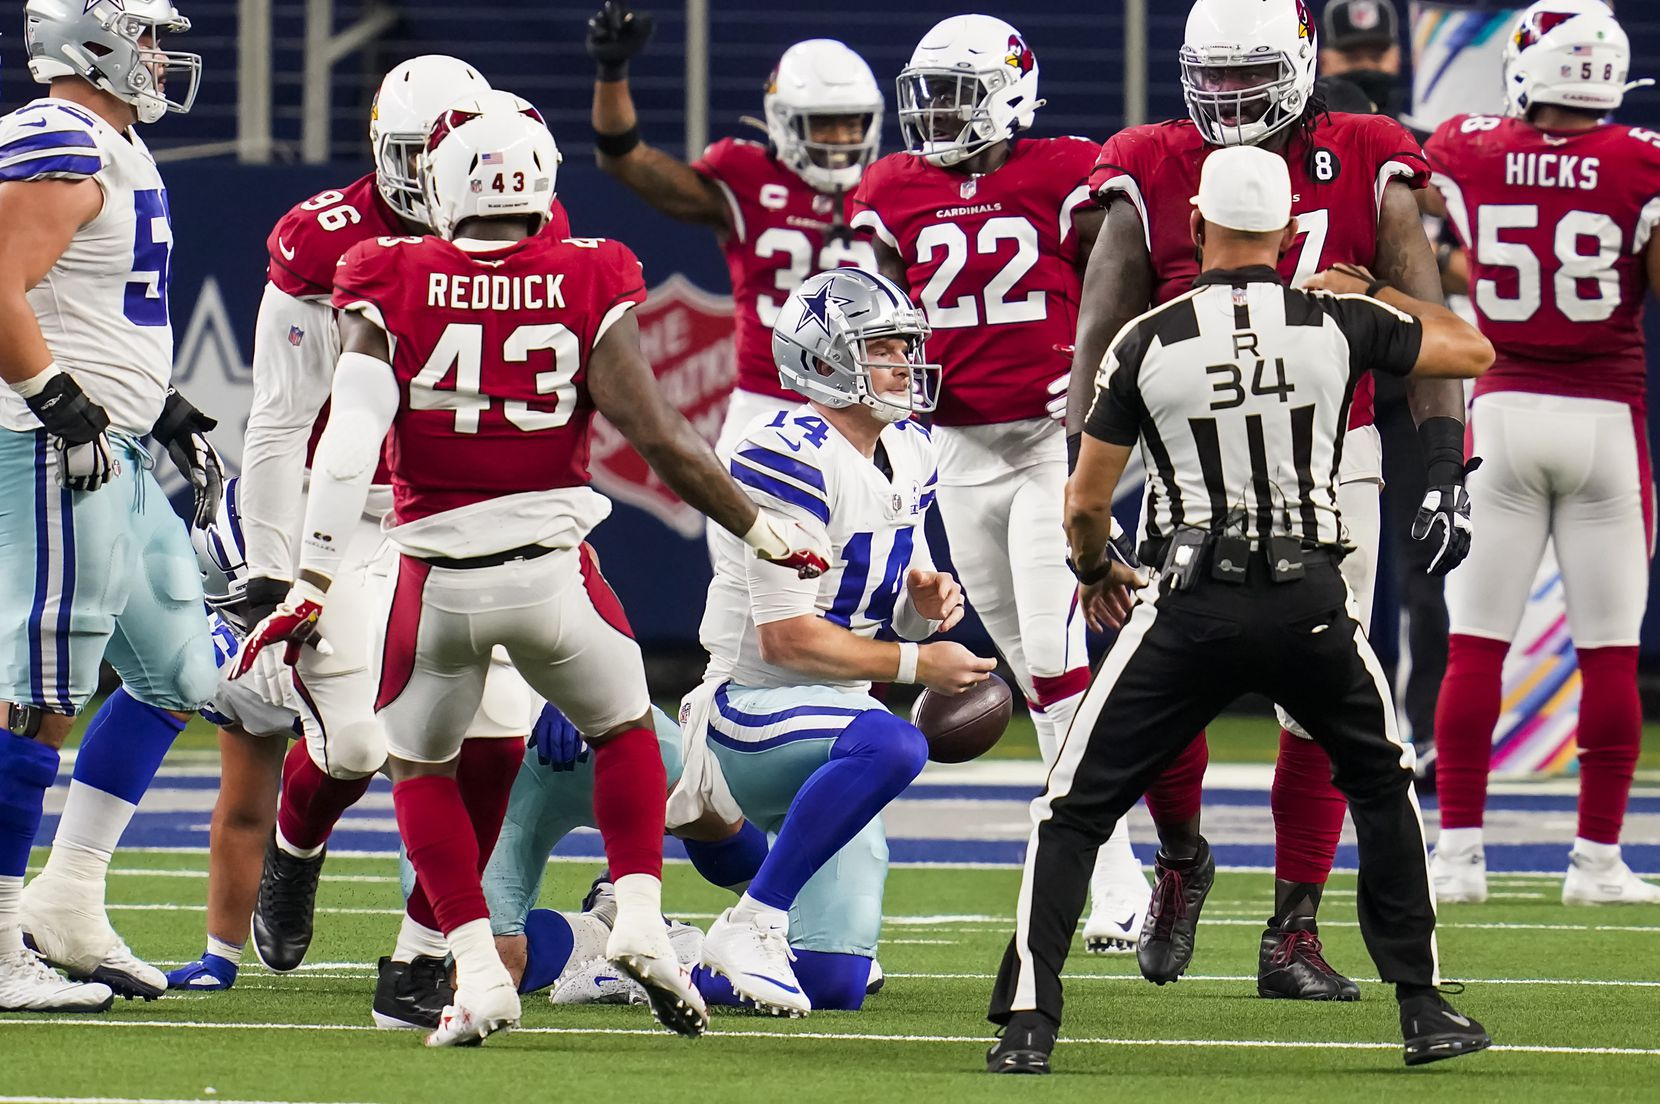 Dallas Cowboys quarterback Andy Dalton (14) tosses the ball away after being sacked by Arizona Cardinals outside linebacker Haason Reddick (43) during the second quarter of an NFL football game at AT&T Stadium on Monday, Oct. 19, 2020, in Arlington. (Smiley N. Pool/The Dallas Morning News)